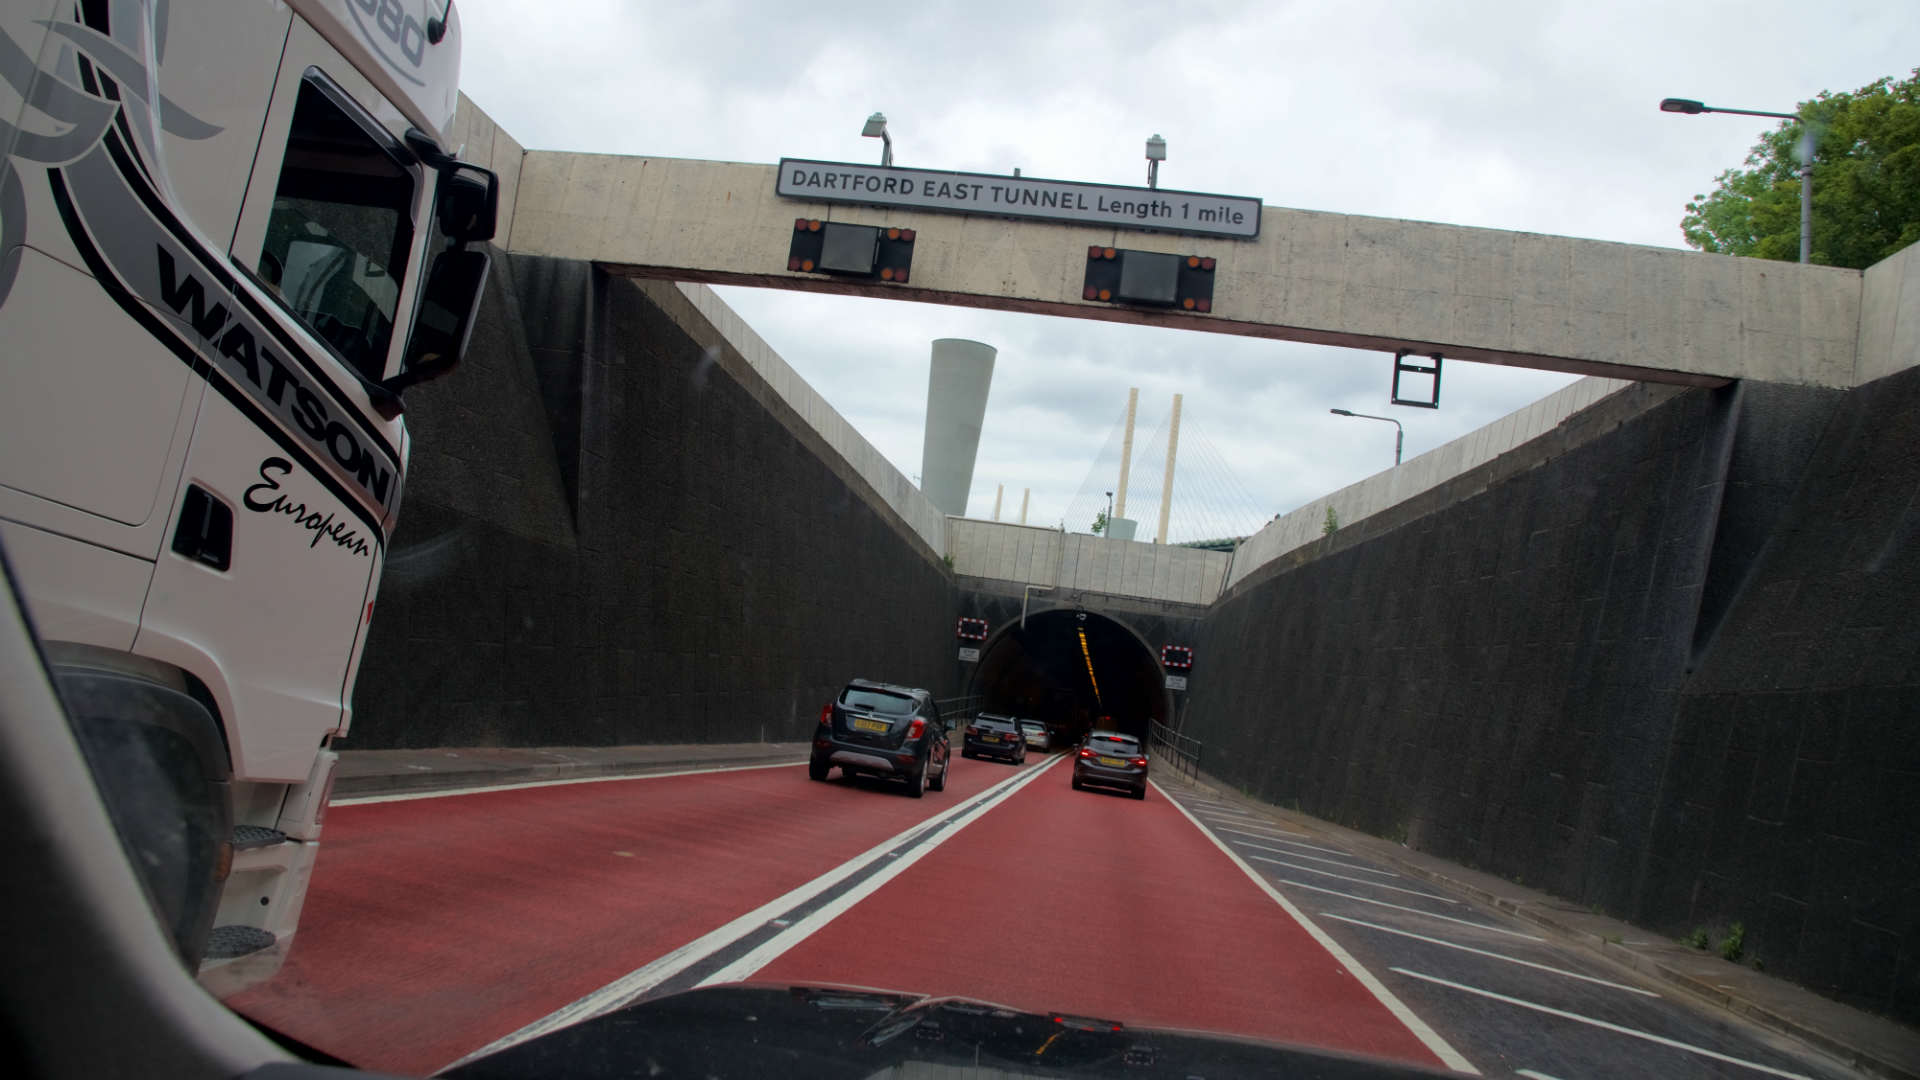 Dartford Crossing East Tunnel